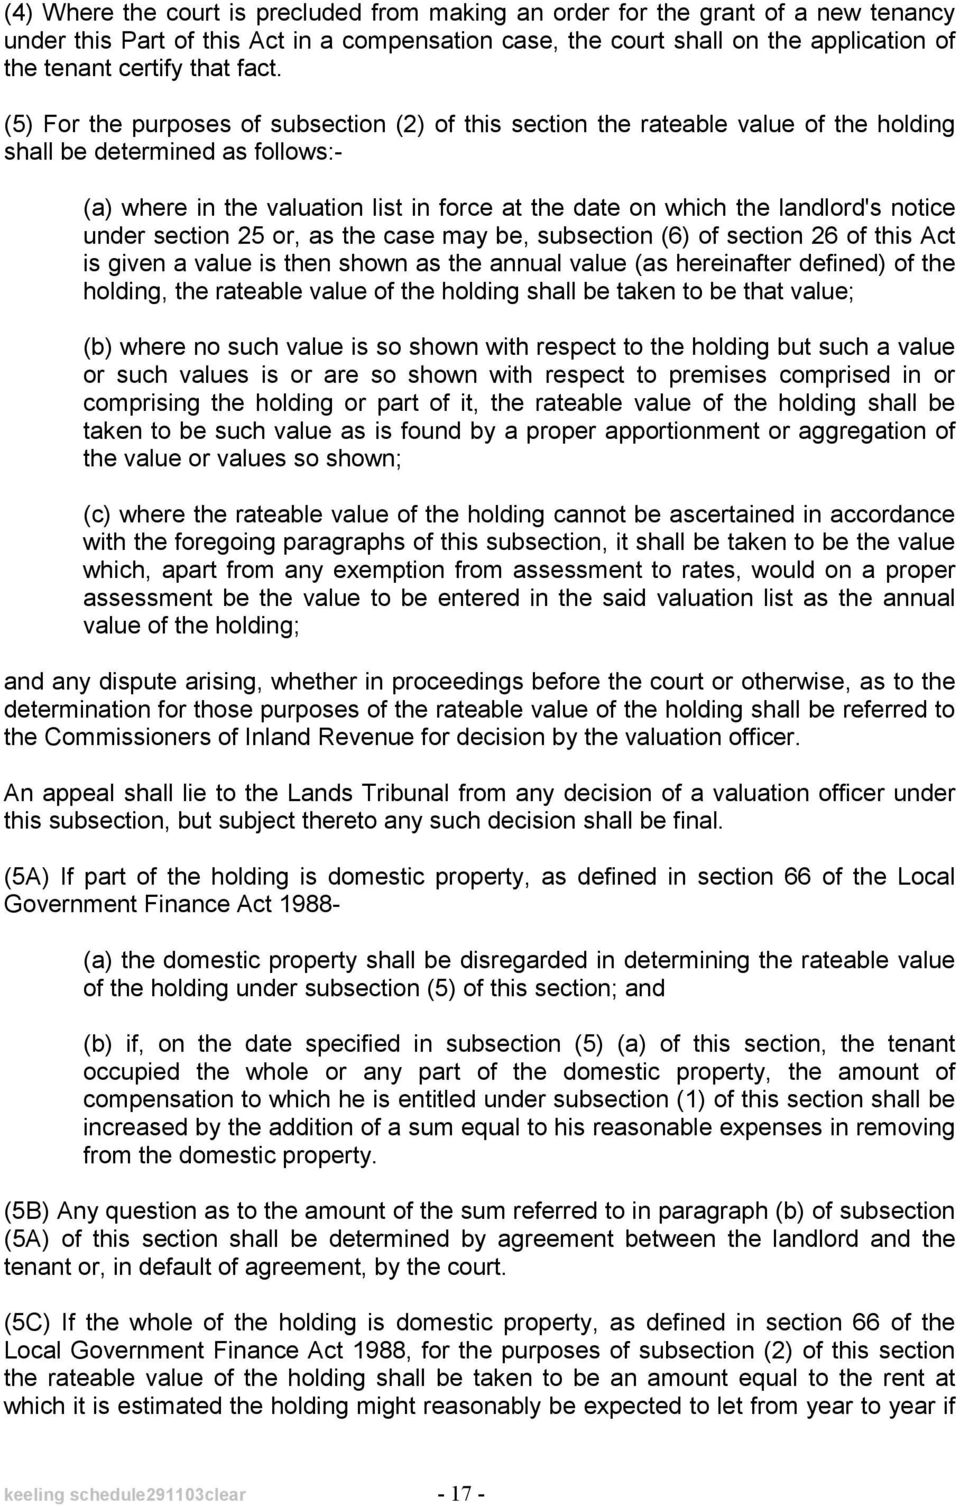 landlord's notice under section 25 or, as the case may be, subsection (6) of section 26 of this Act is given a value is then shown as the annual value (as hereinafter defined) of the holding, the